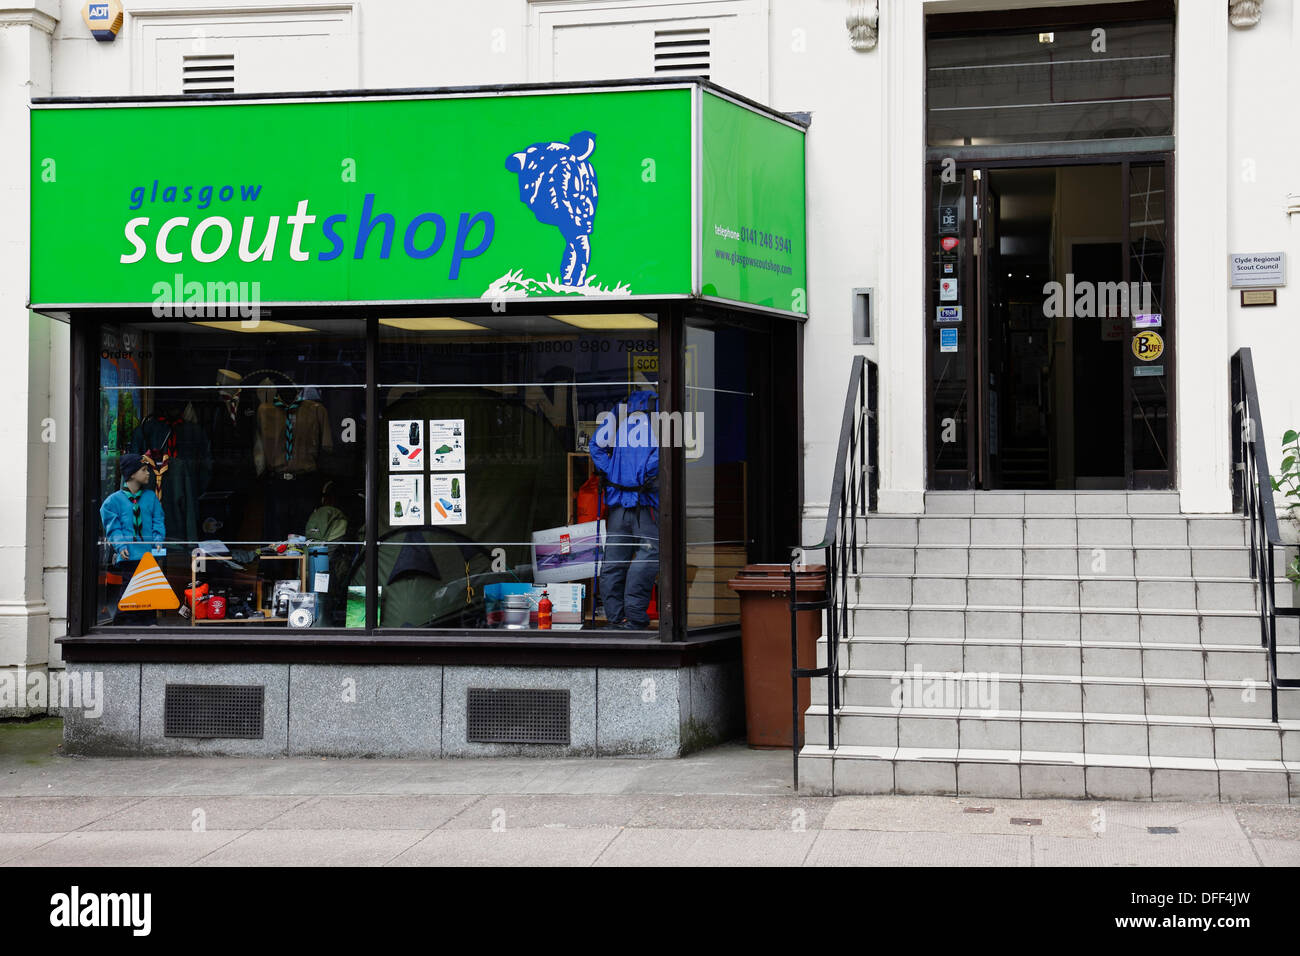 The Scout Shop on Elmbank Street in Glasgow city centre, Scotland, UK - Stock Image